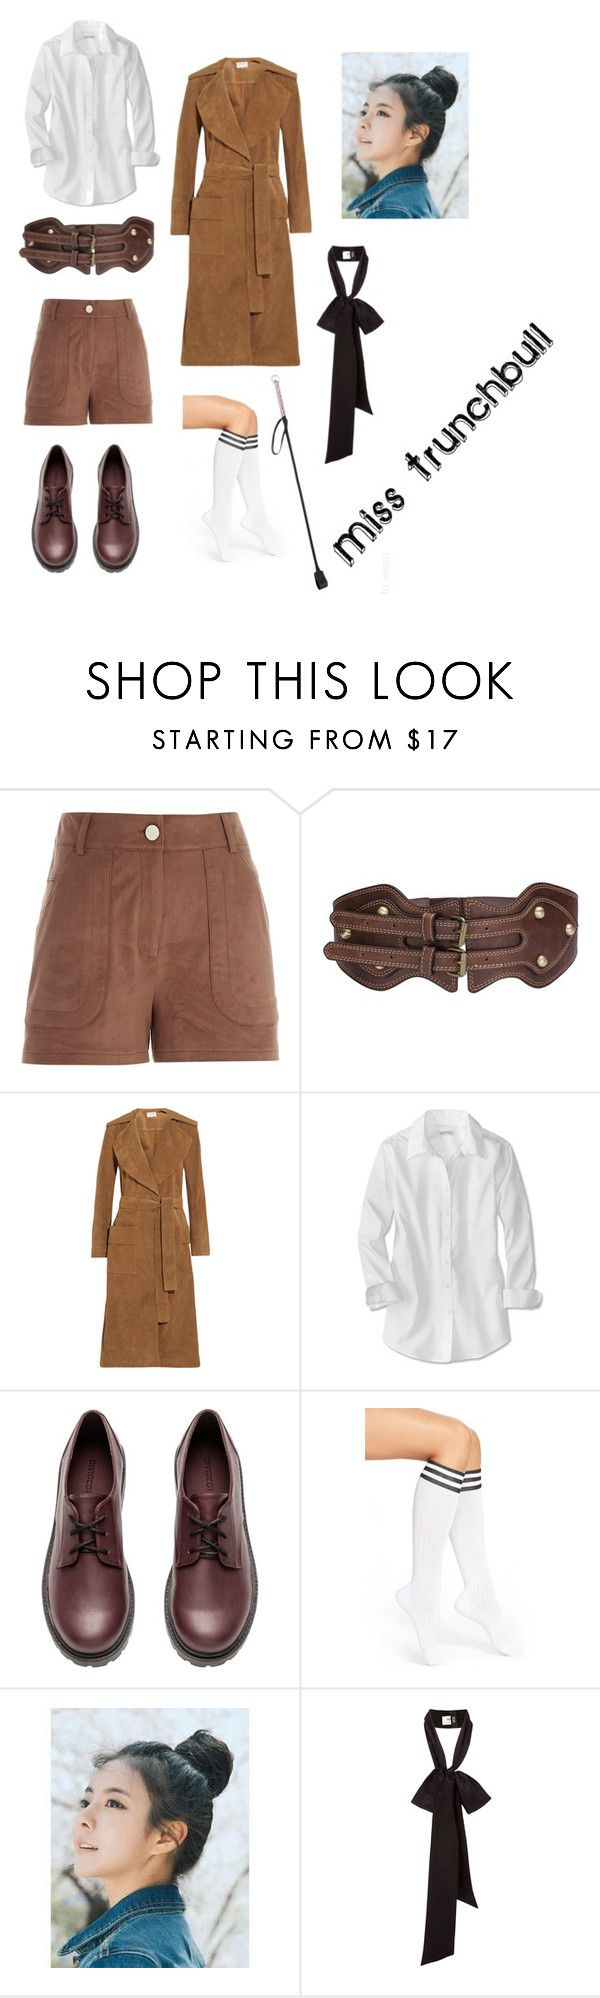 matilda Miss trunchbull by leanda-klaassen on Polyvore featuring Frame Denim, River Island, Arthur George, H&M and pinkage